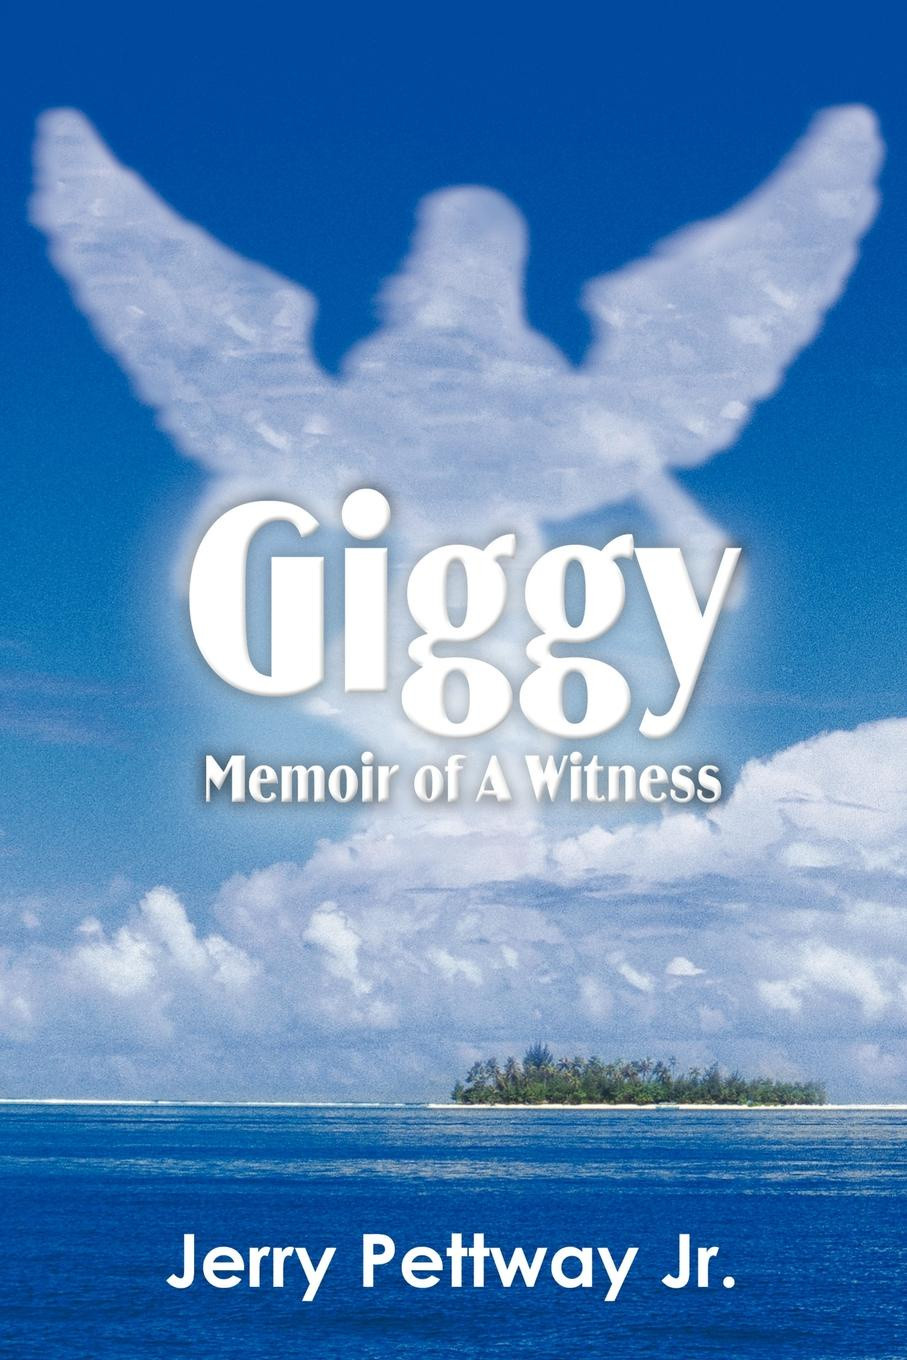 Jerry Pettway Jr. Giggy Memoir of A Witness